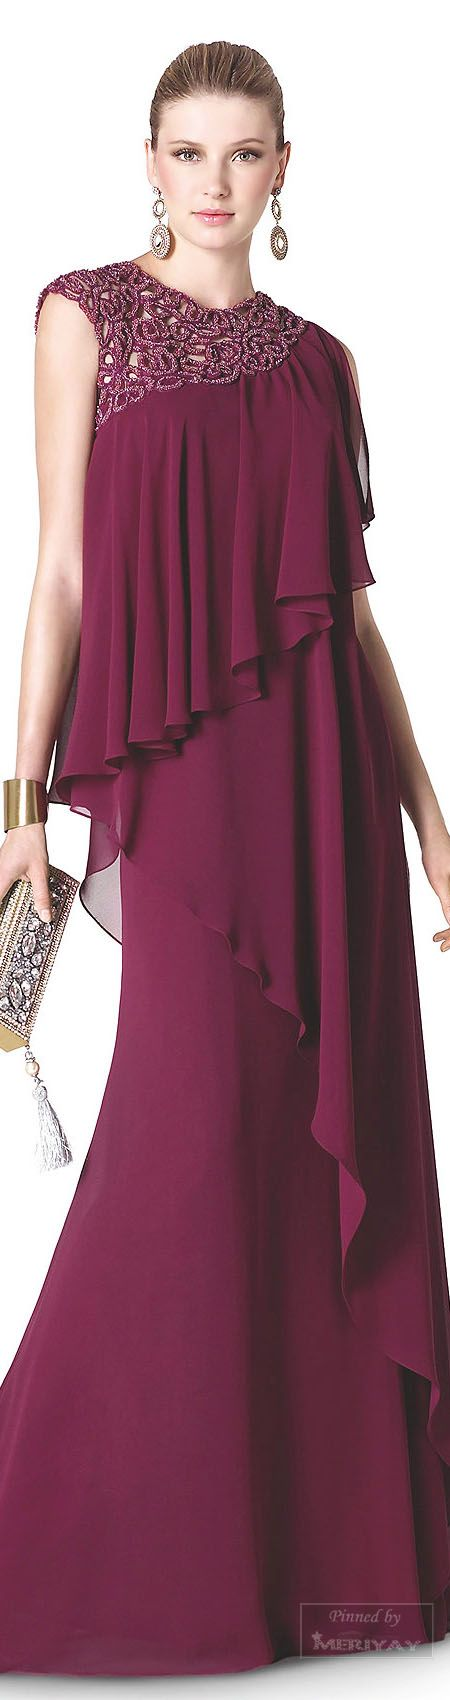 Idea de color para vestido.